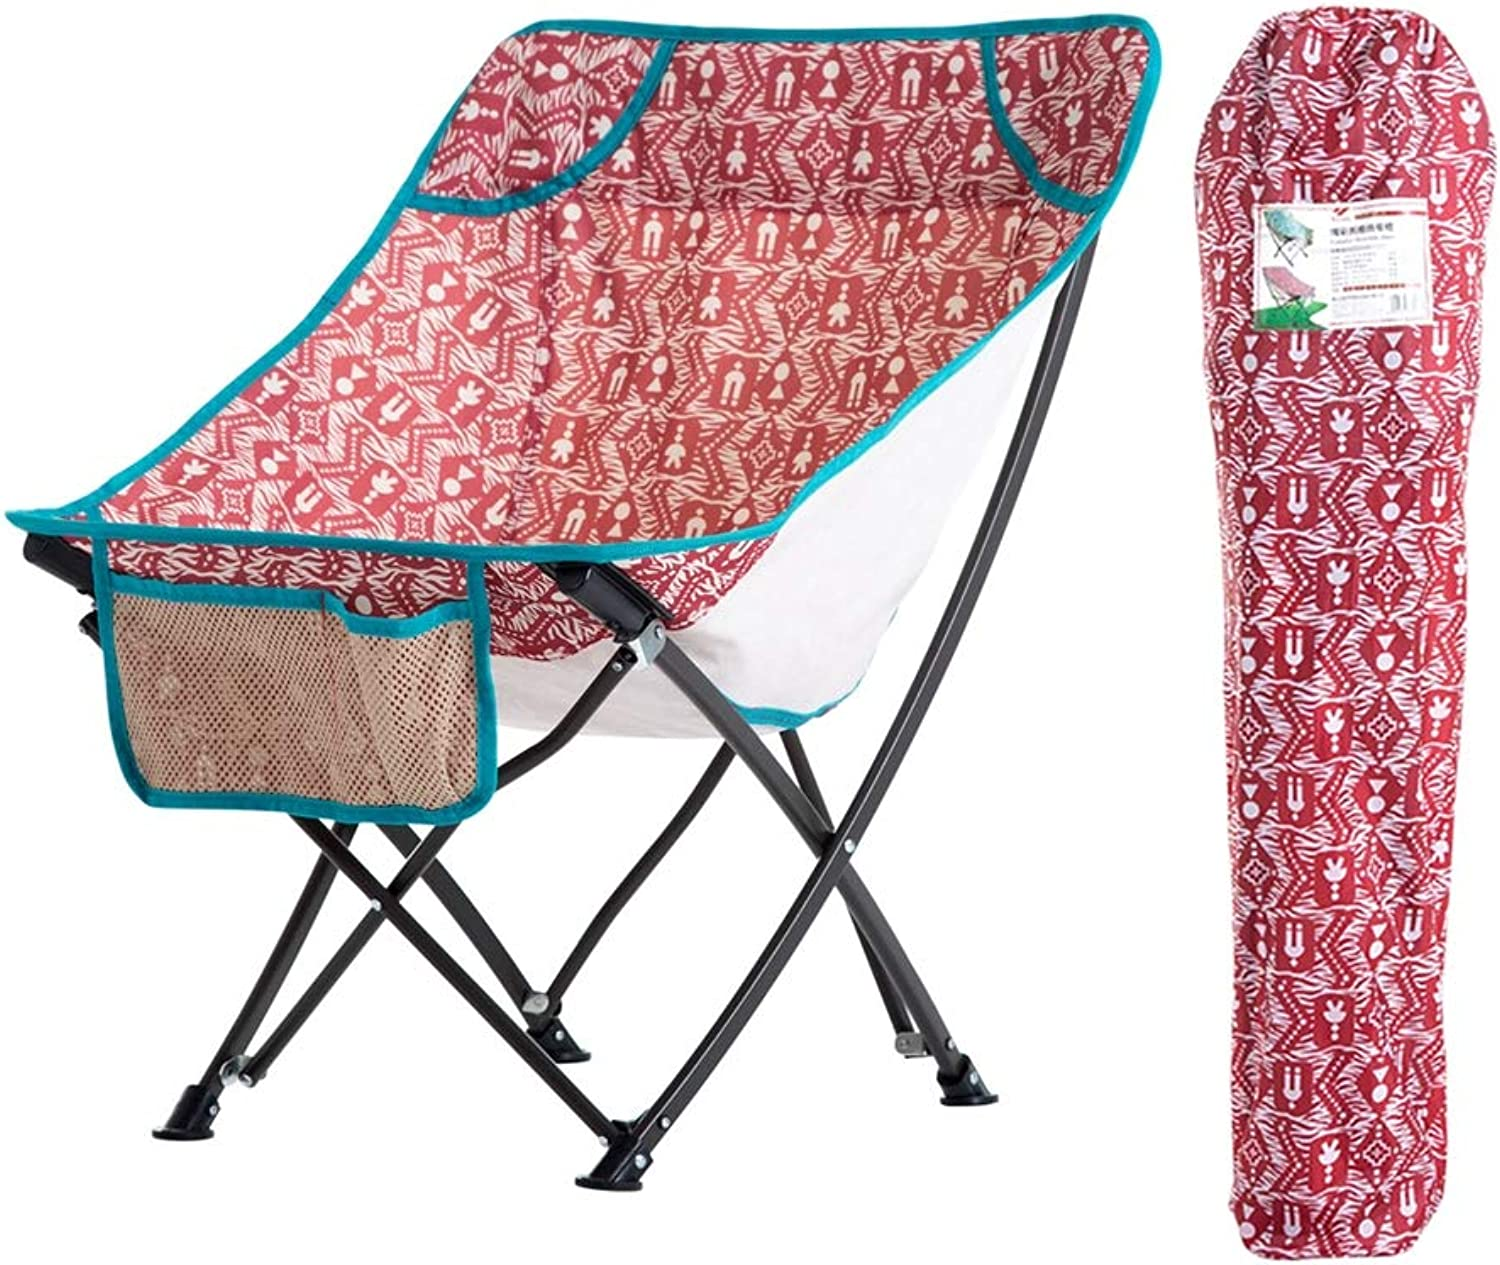 Foldable Chairs with Bag for Adults–Portable, Durable, Collapsible, for Sports, RV Camping, and Fishing,Red